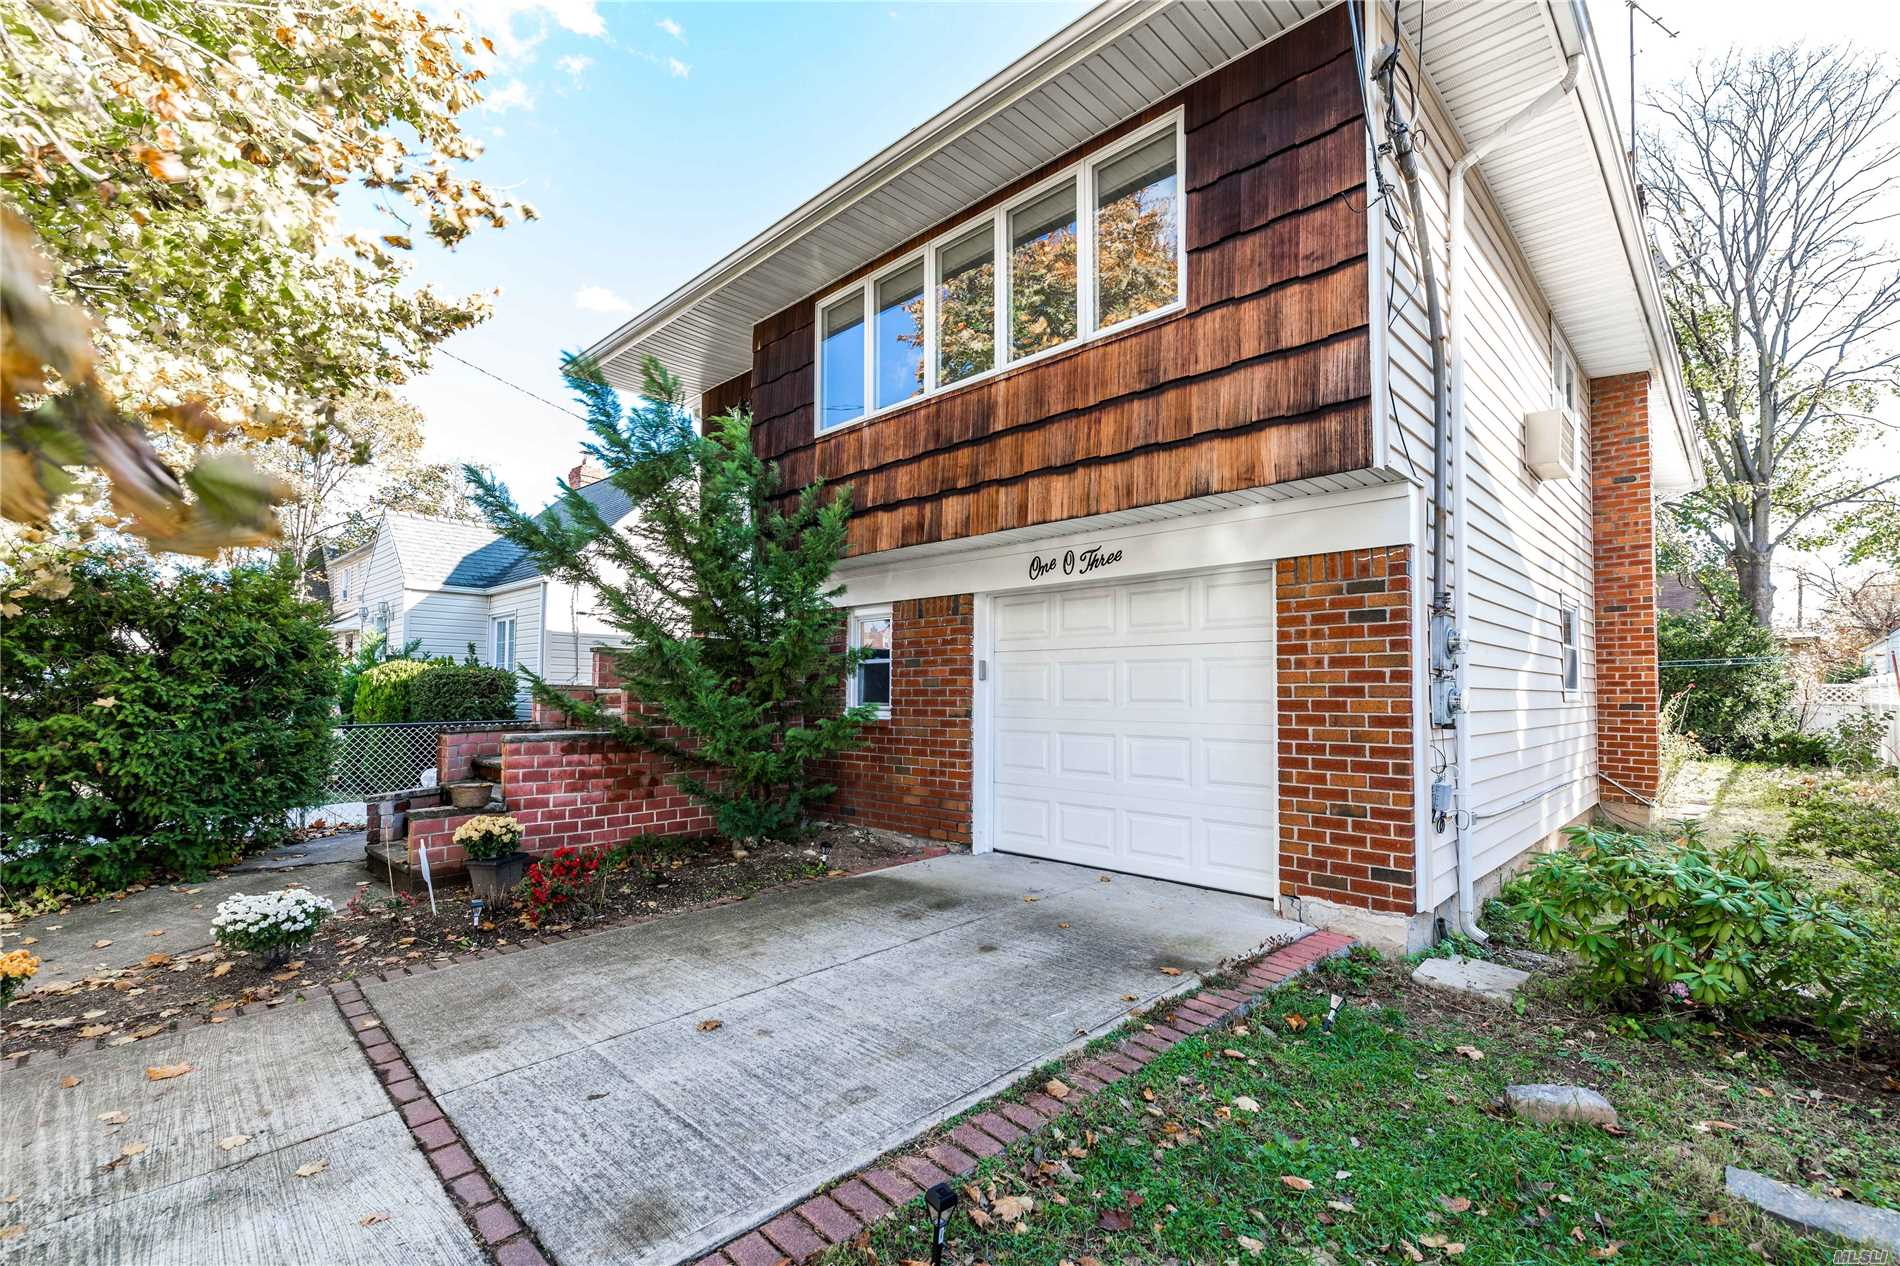 Spacious Contemporary Hi Ranch. Great Layout! Updated Eik And Baths. Well Maintained Boiler And Separate Hot Water Heater. 4 Year Old Roof, Siding And Fence For Yard. Shows Well!